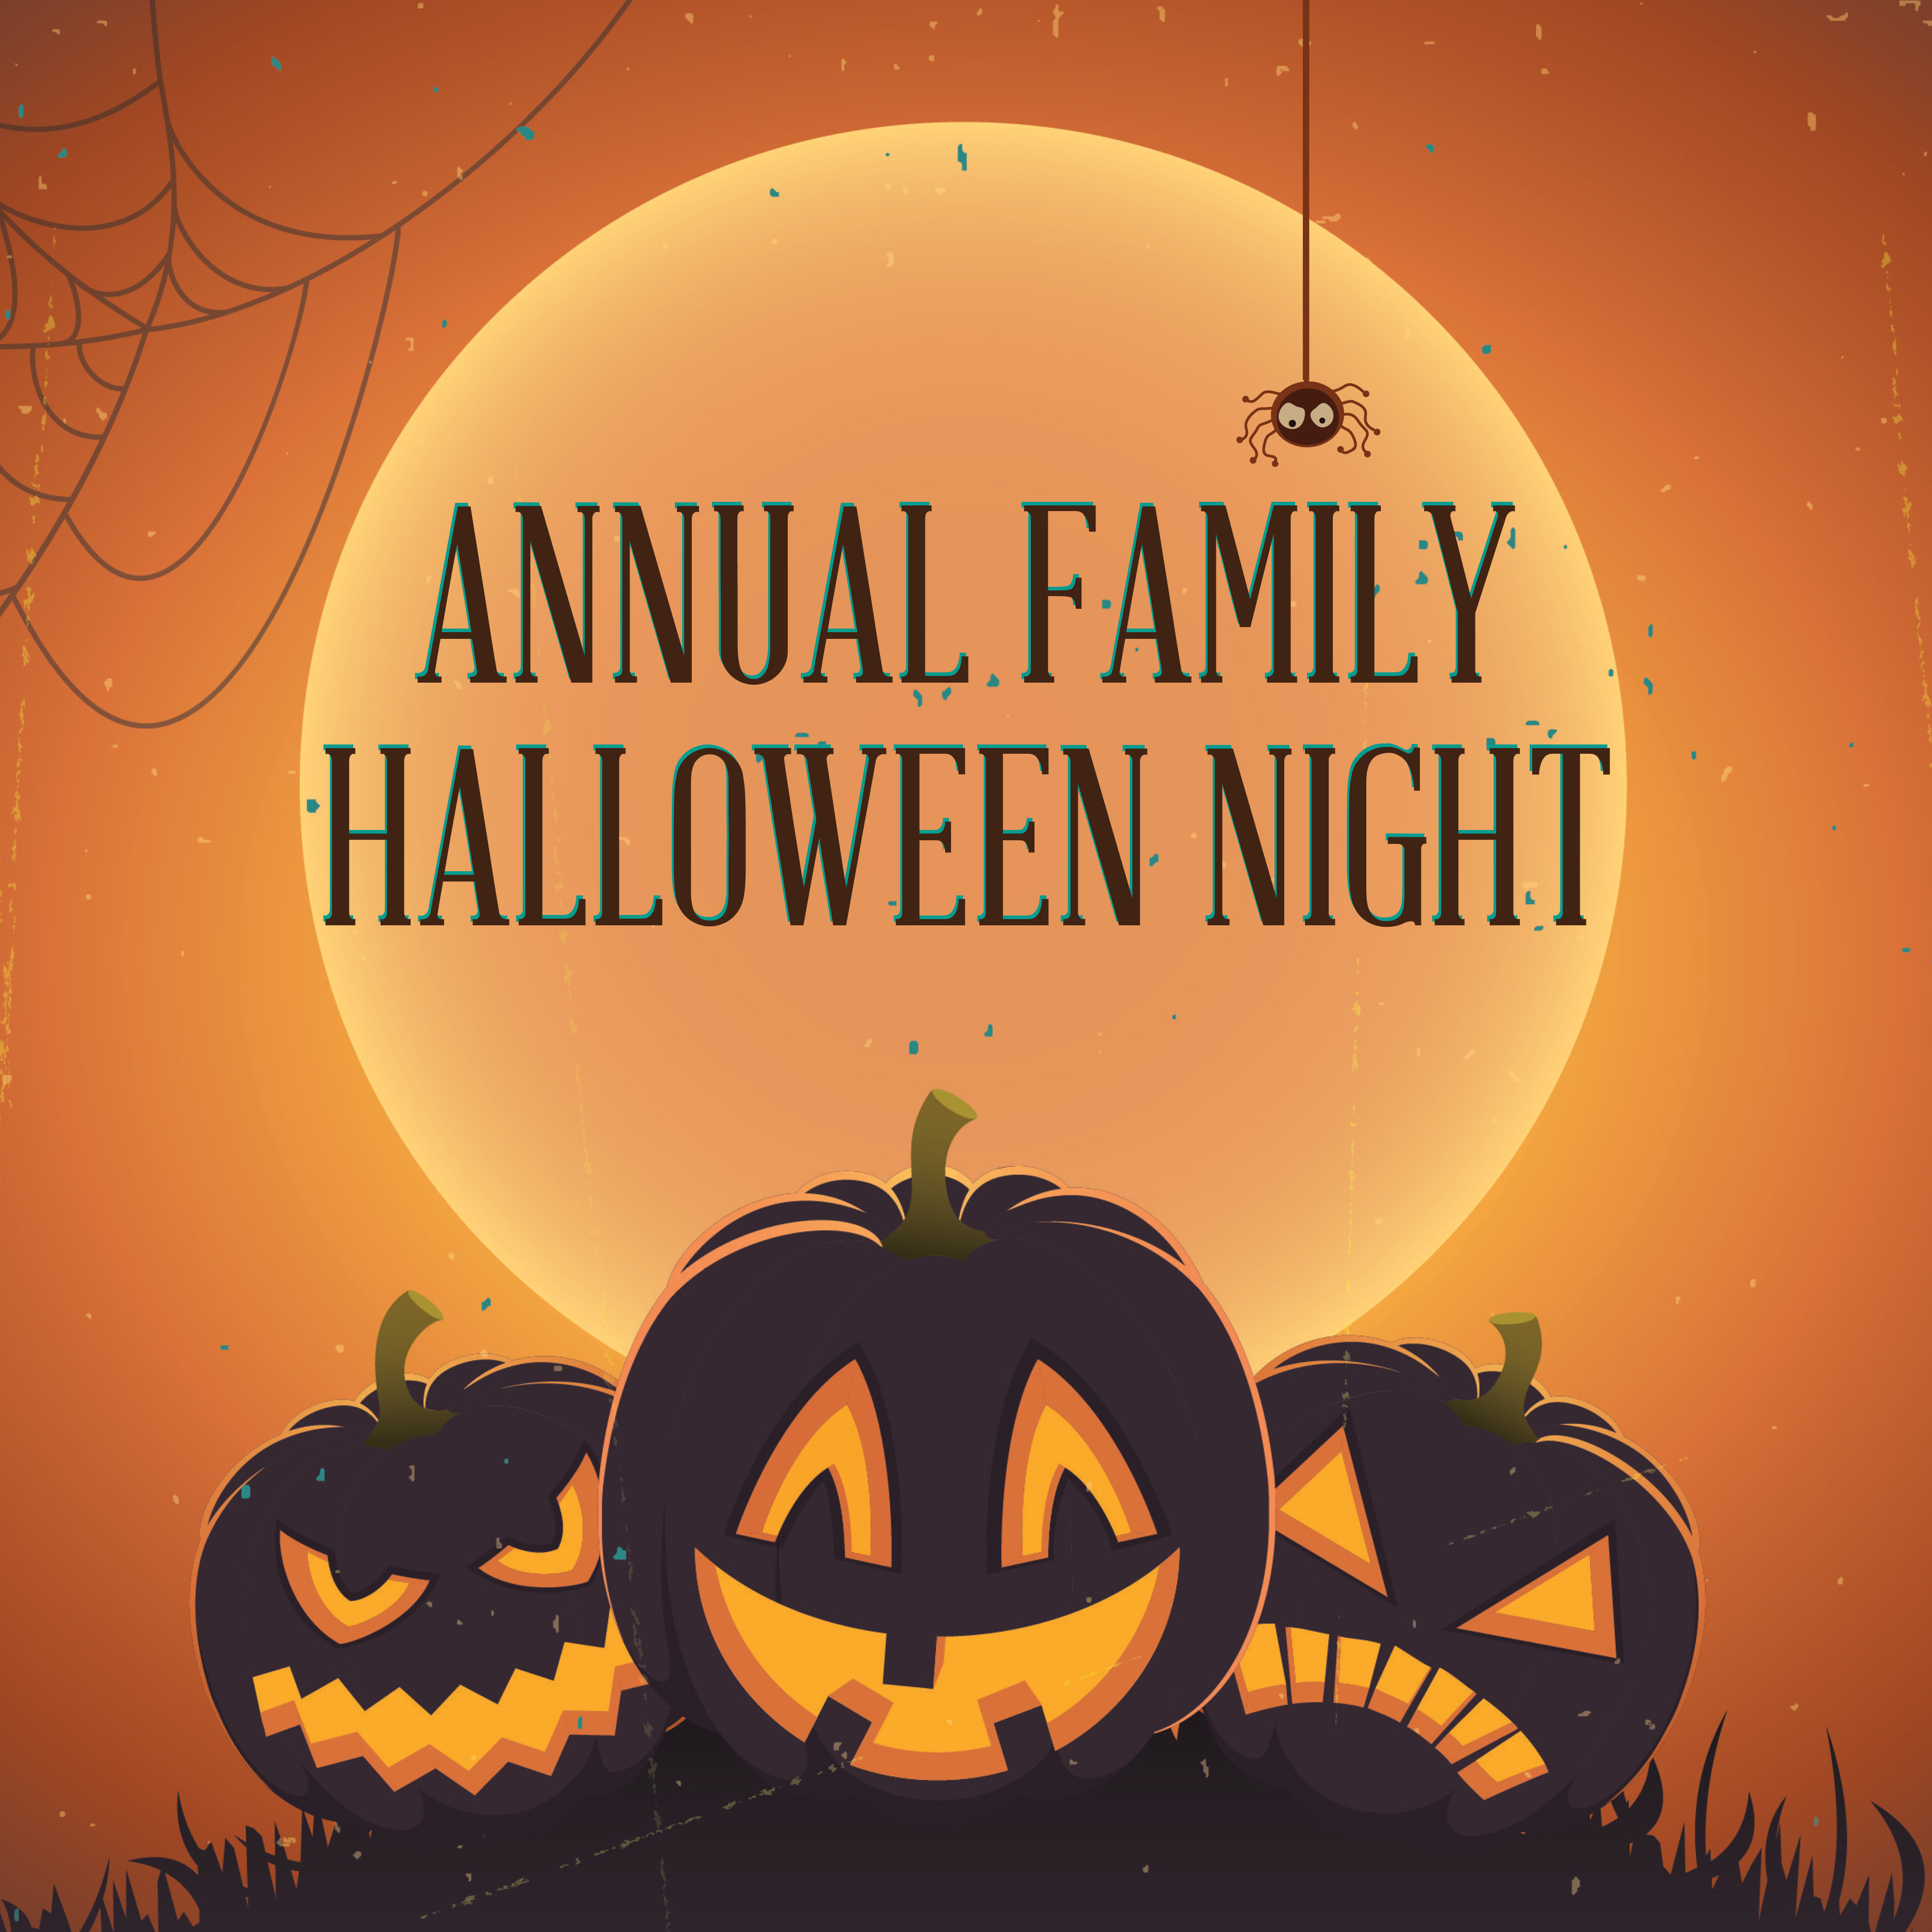 Annual Family Halloween Night at St Johns Golf and Country Club in St Augustine, FL